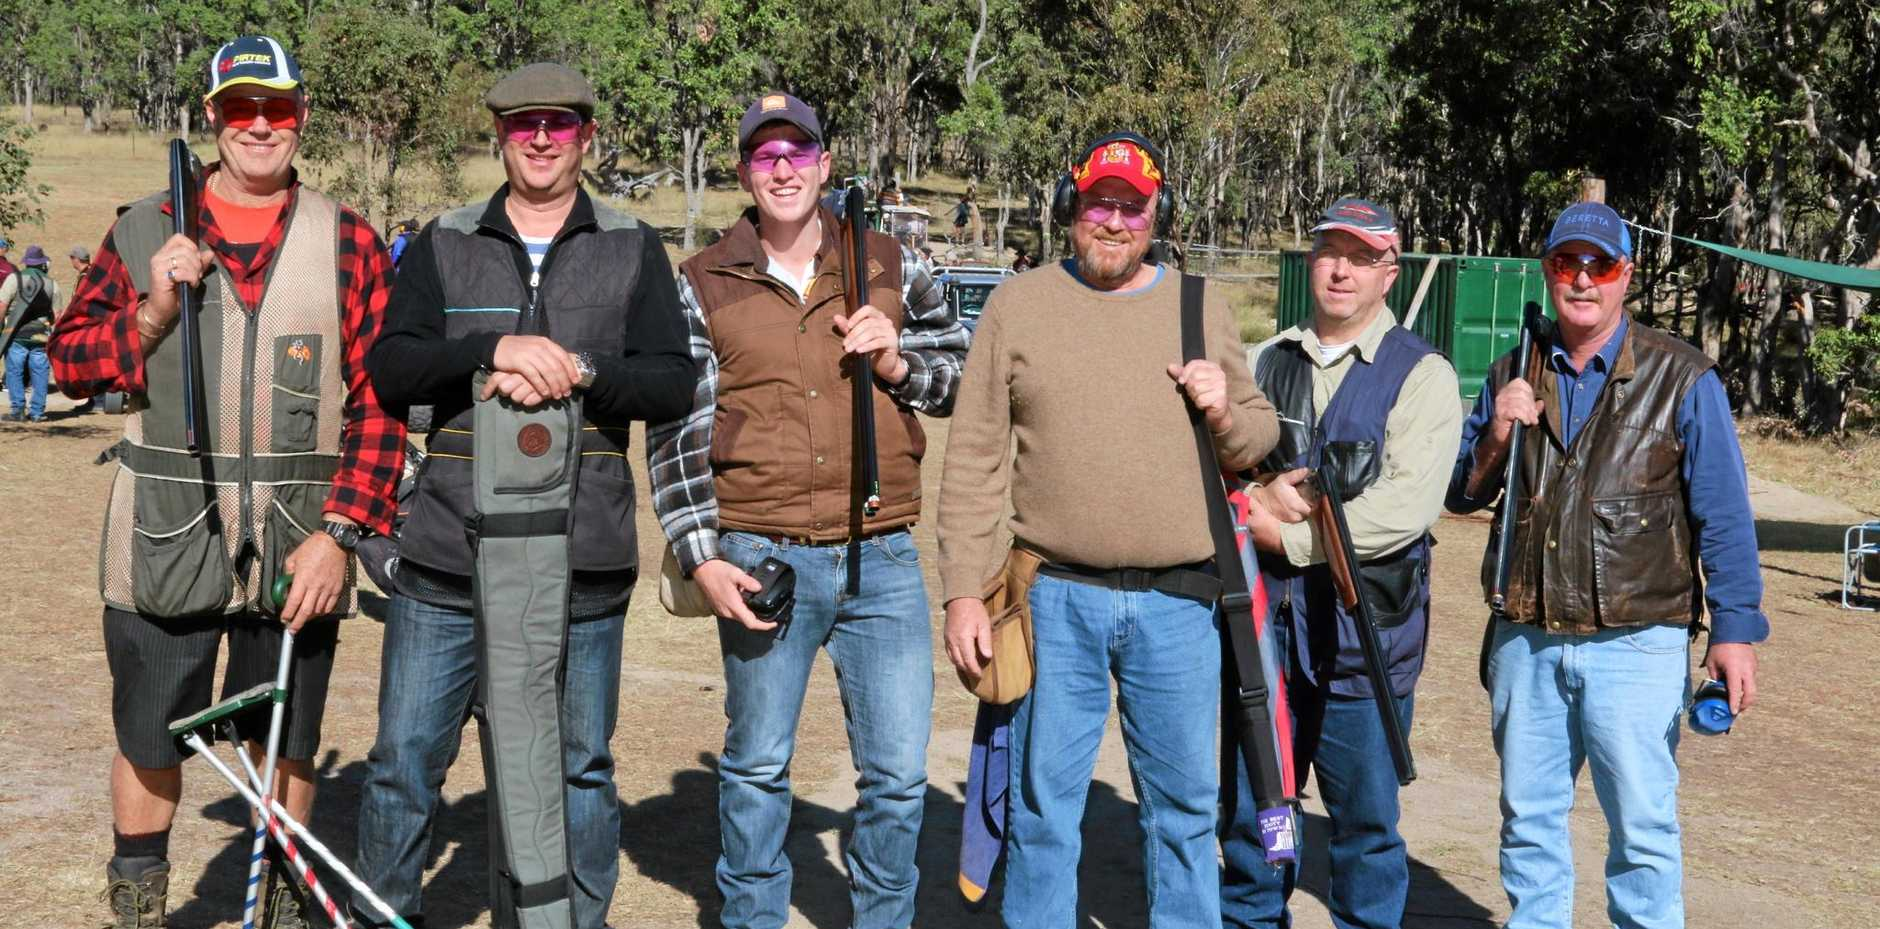 ON TARGET: Clive Salmond, Nick Long, Lachlan Cowie, Jim Johnson, Adrian Leech and Peter Cowrie enjoy a day at the Cherrabah Sporting Clays complex.